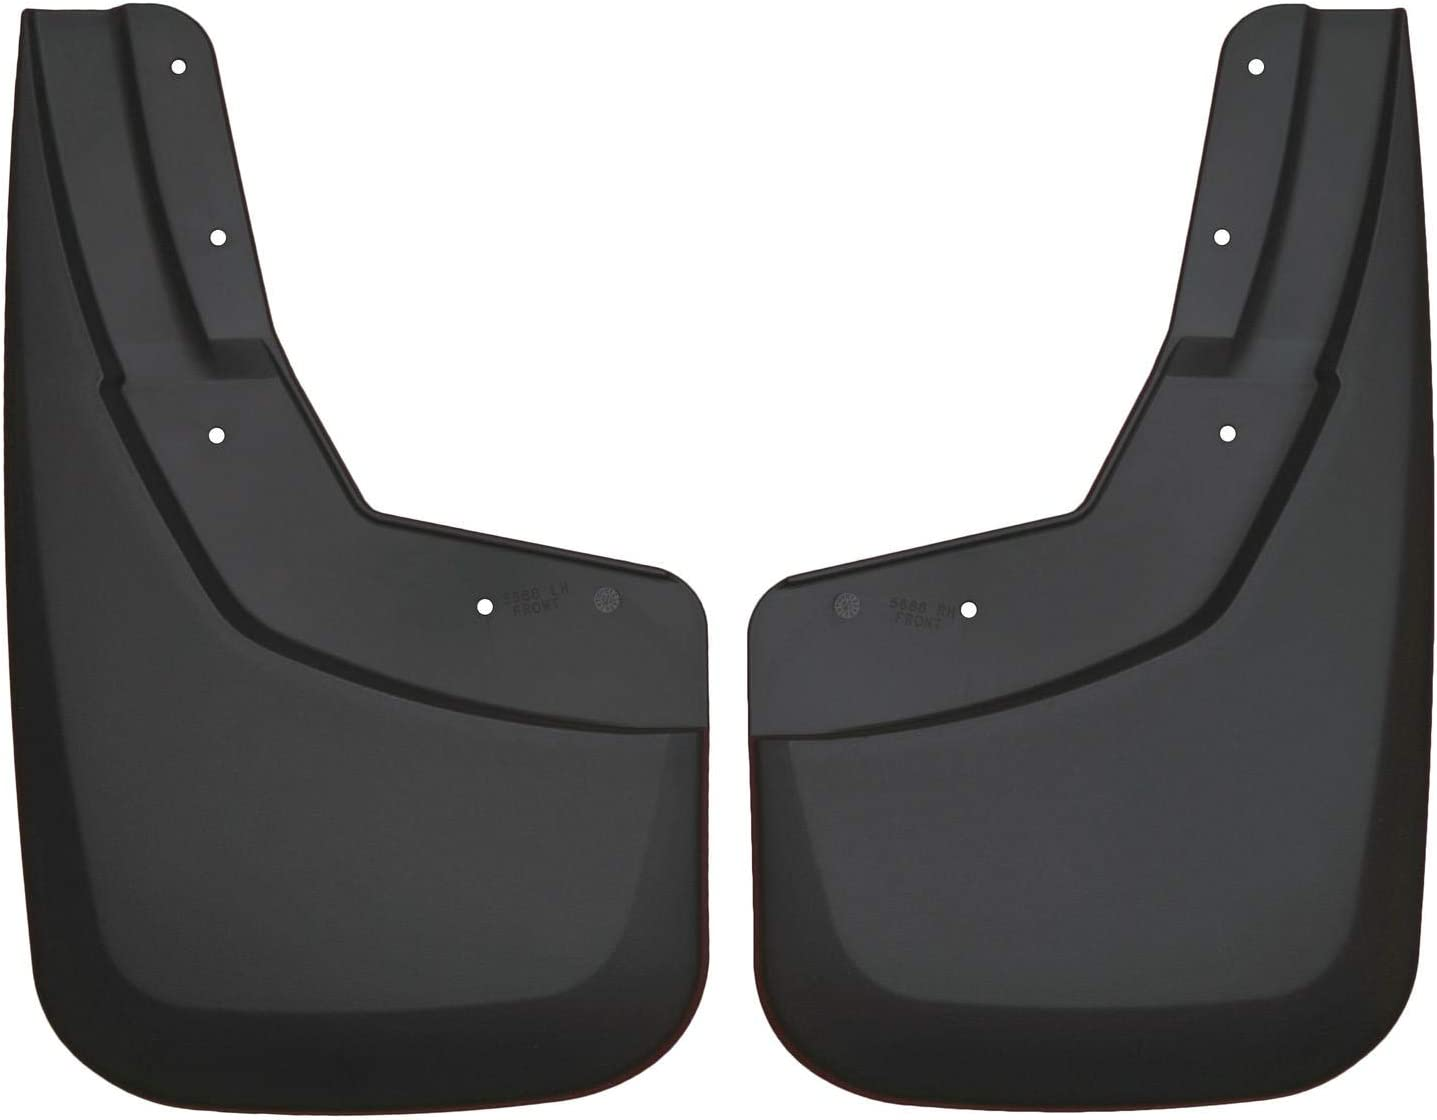 2007-14 GMC Tahoe Husky Liners Fits 2007-14 Cadillac Escalade without Z71 package Custom Front Mud Guards 2007-14 Chevrolet Suburban